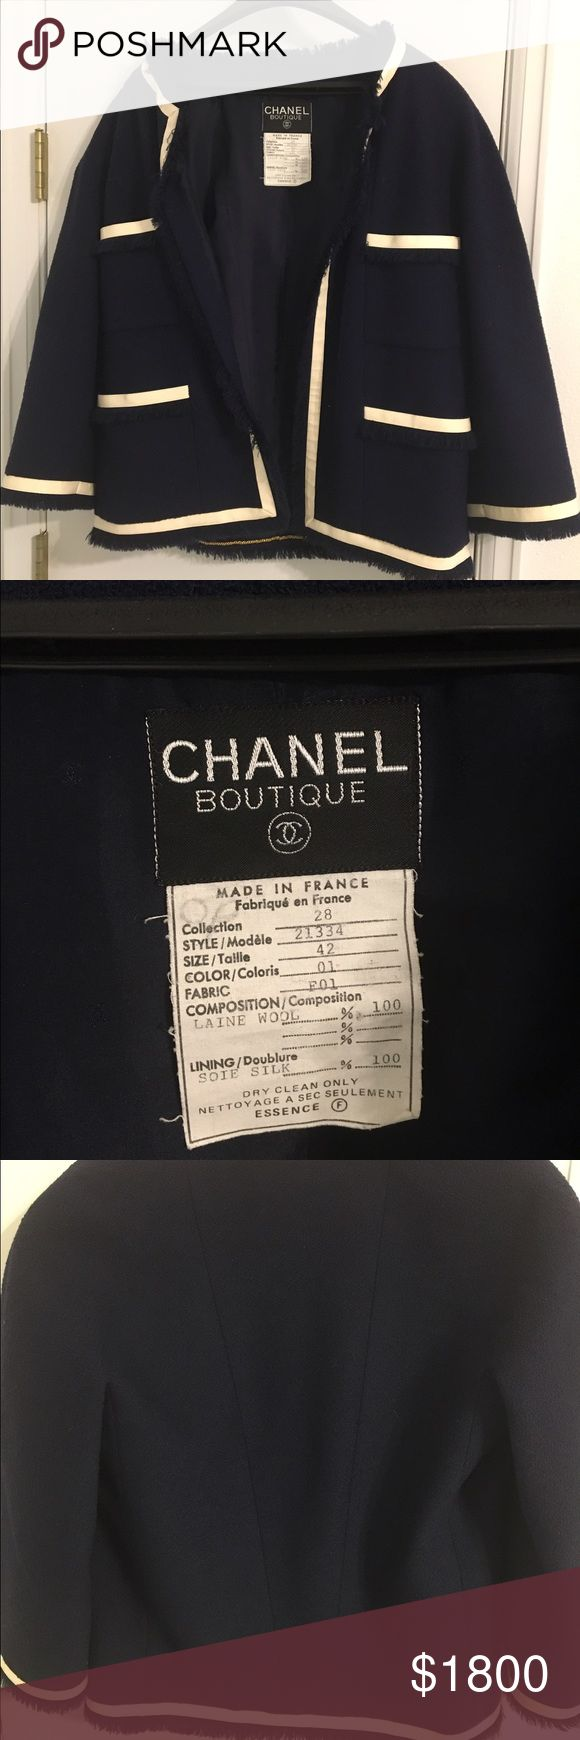 Chanel Boutique original. Collection 28 size 42. Perfect condition. White vinyl piping is retro. Beautiful piece for Chanel collectors. CHANEL Jackets & Coats Blazers